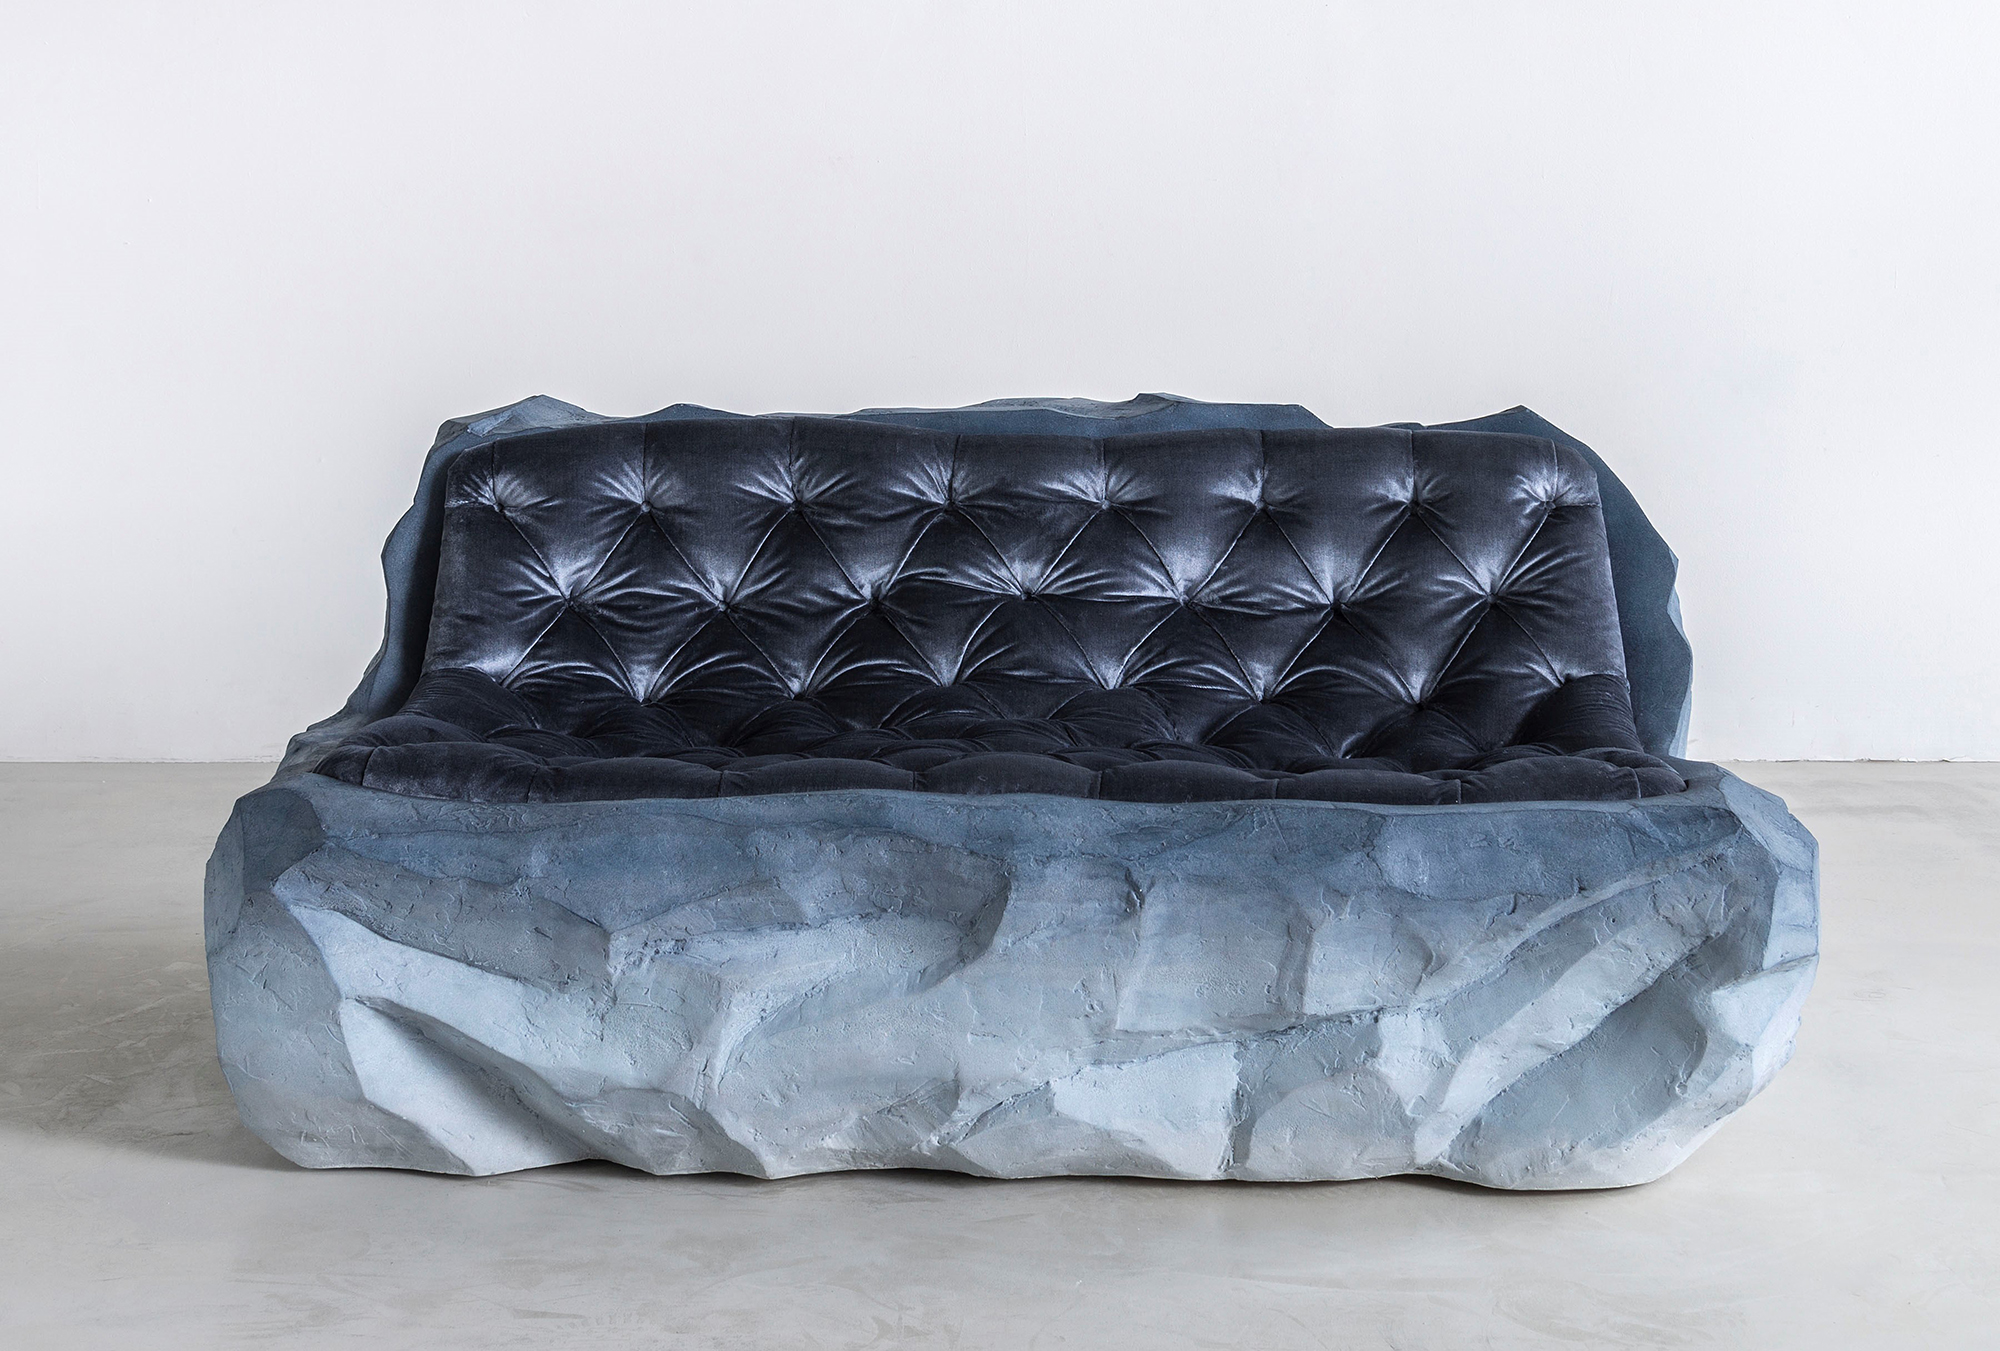 HERITAGE LUX - Drift Sofa by Fernando Mastrangelo, Photography by Cary Whittier